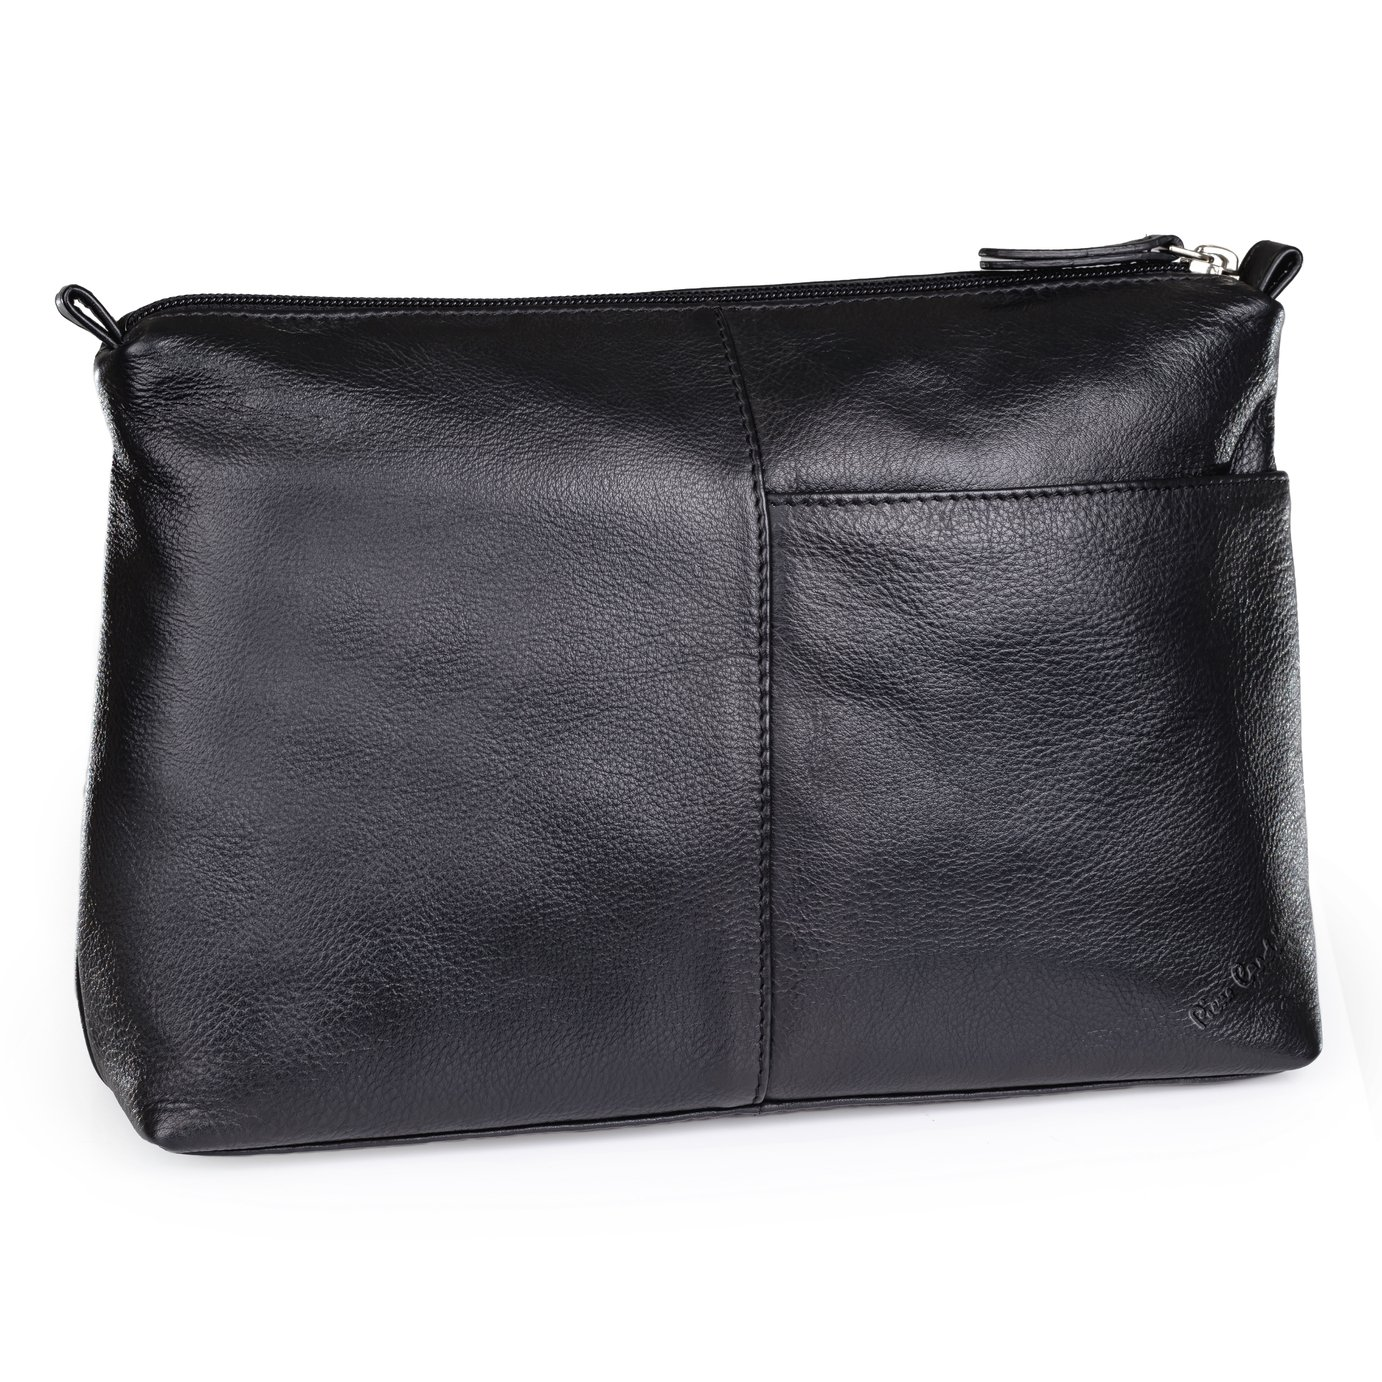 Pierre Cardin Leather Hanging Travel Toiletry Bag